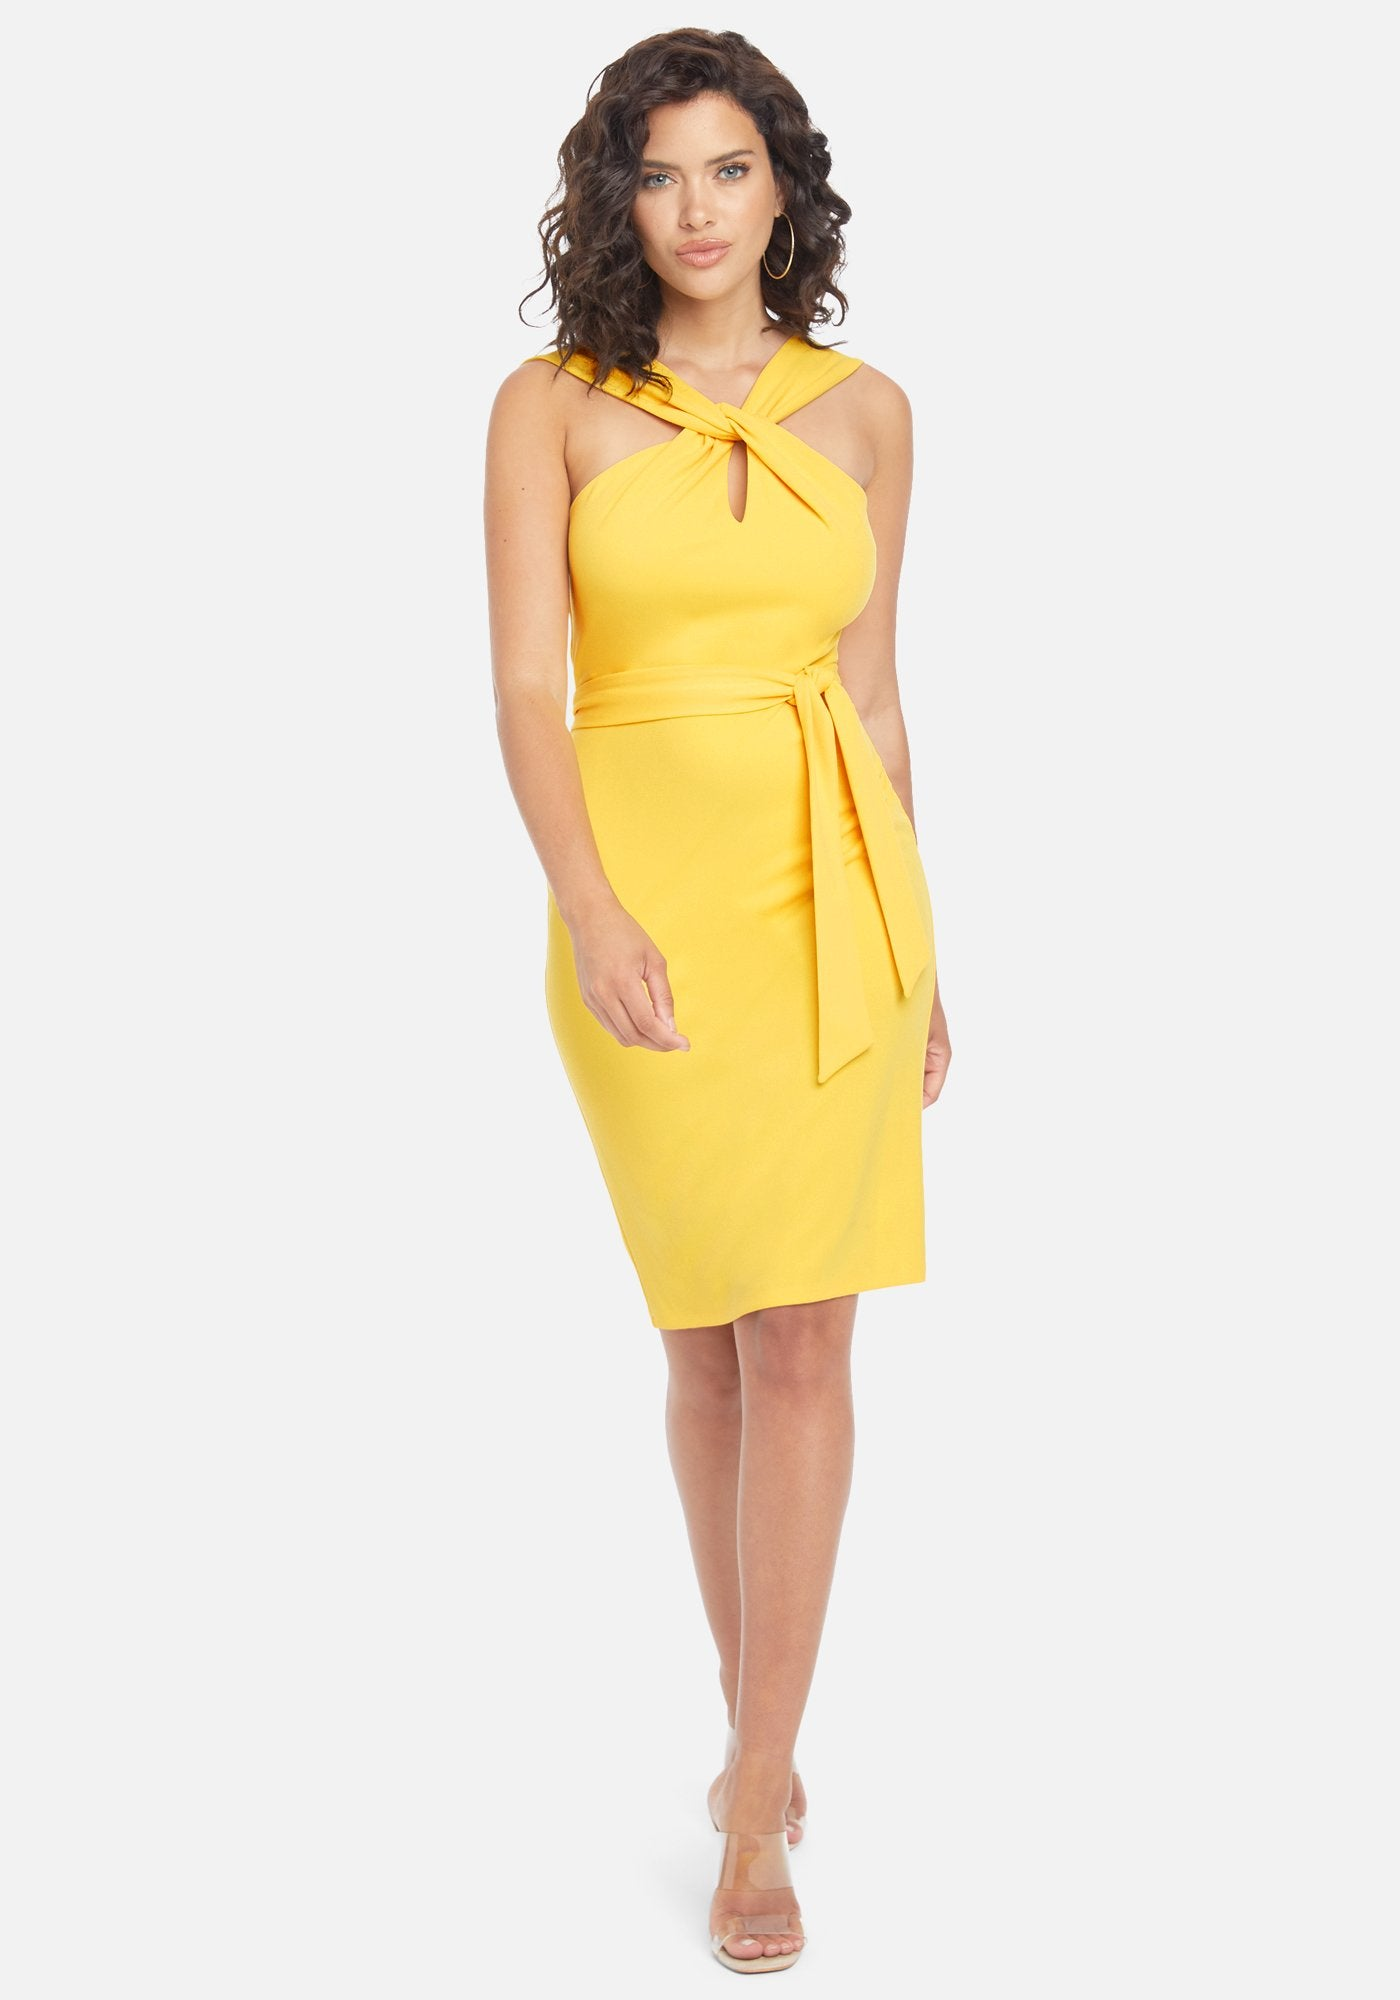 Bebe Women's Keyhole Belted Midi Dress, Size 2 in Yellow Polyester